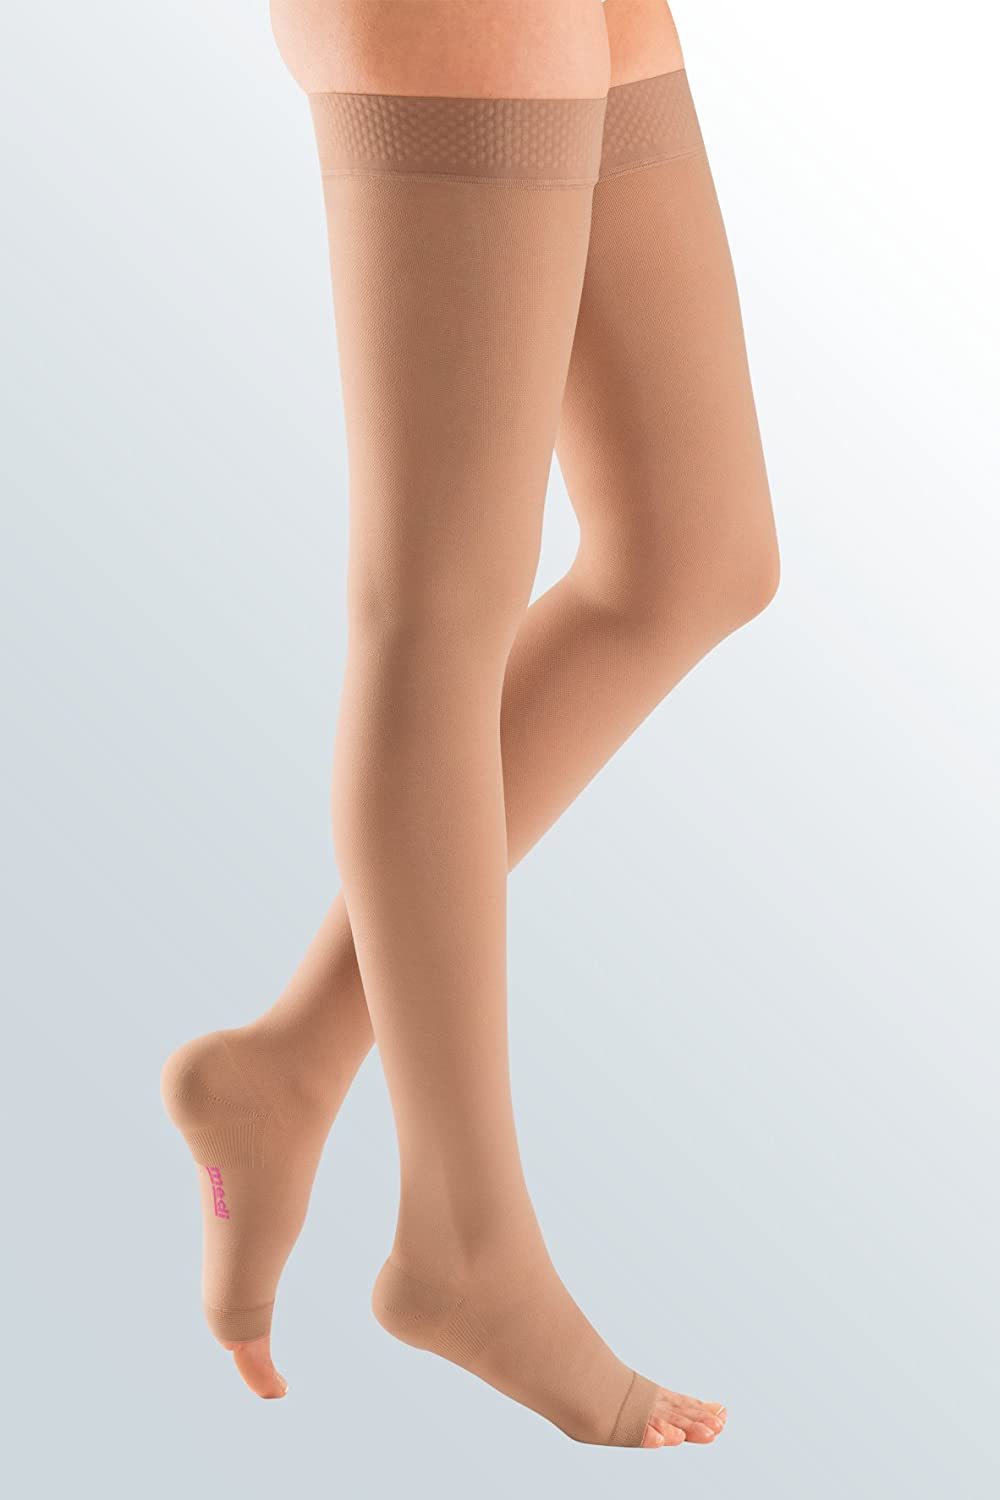 mediven Plus, 40-50 mmHg, Thigh High w/Silicone Top-Band, Open Toe